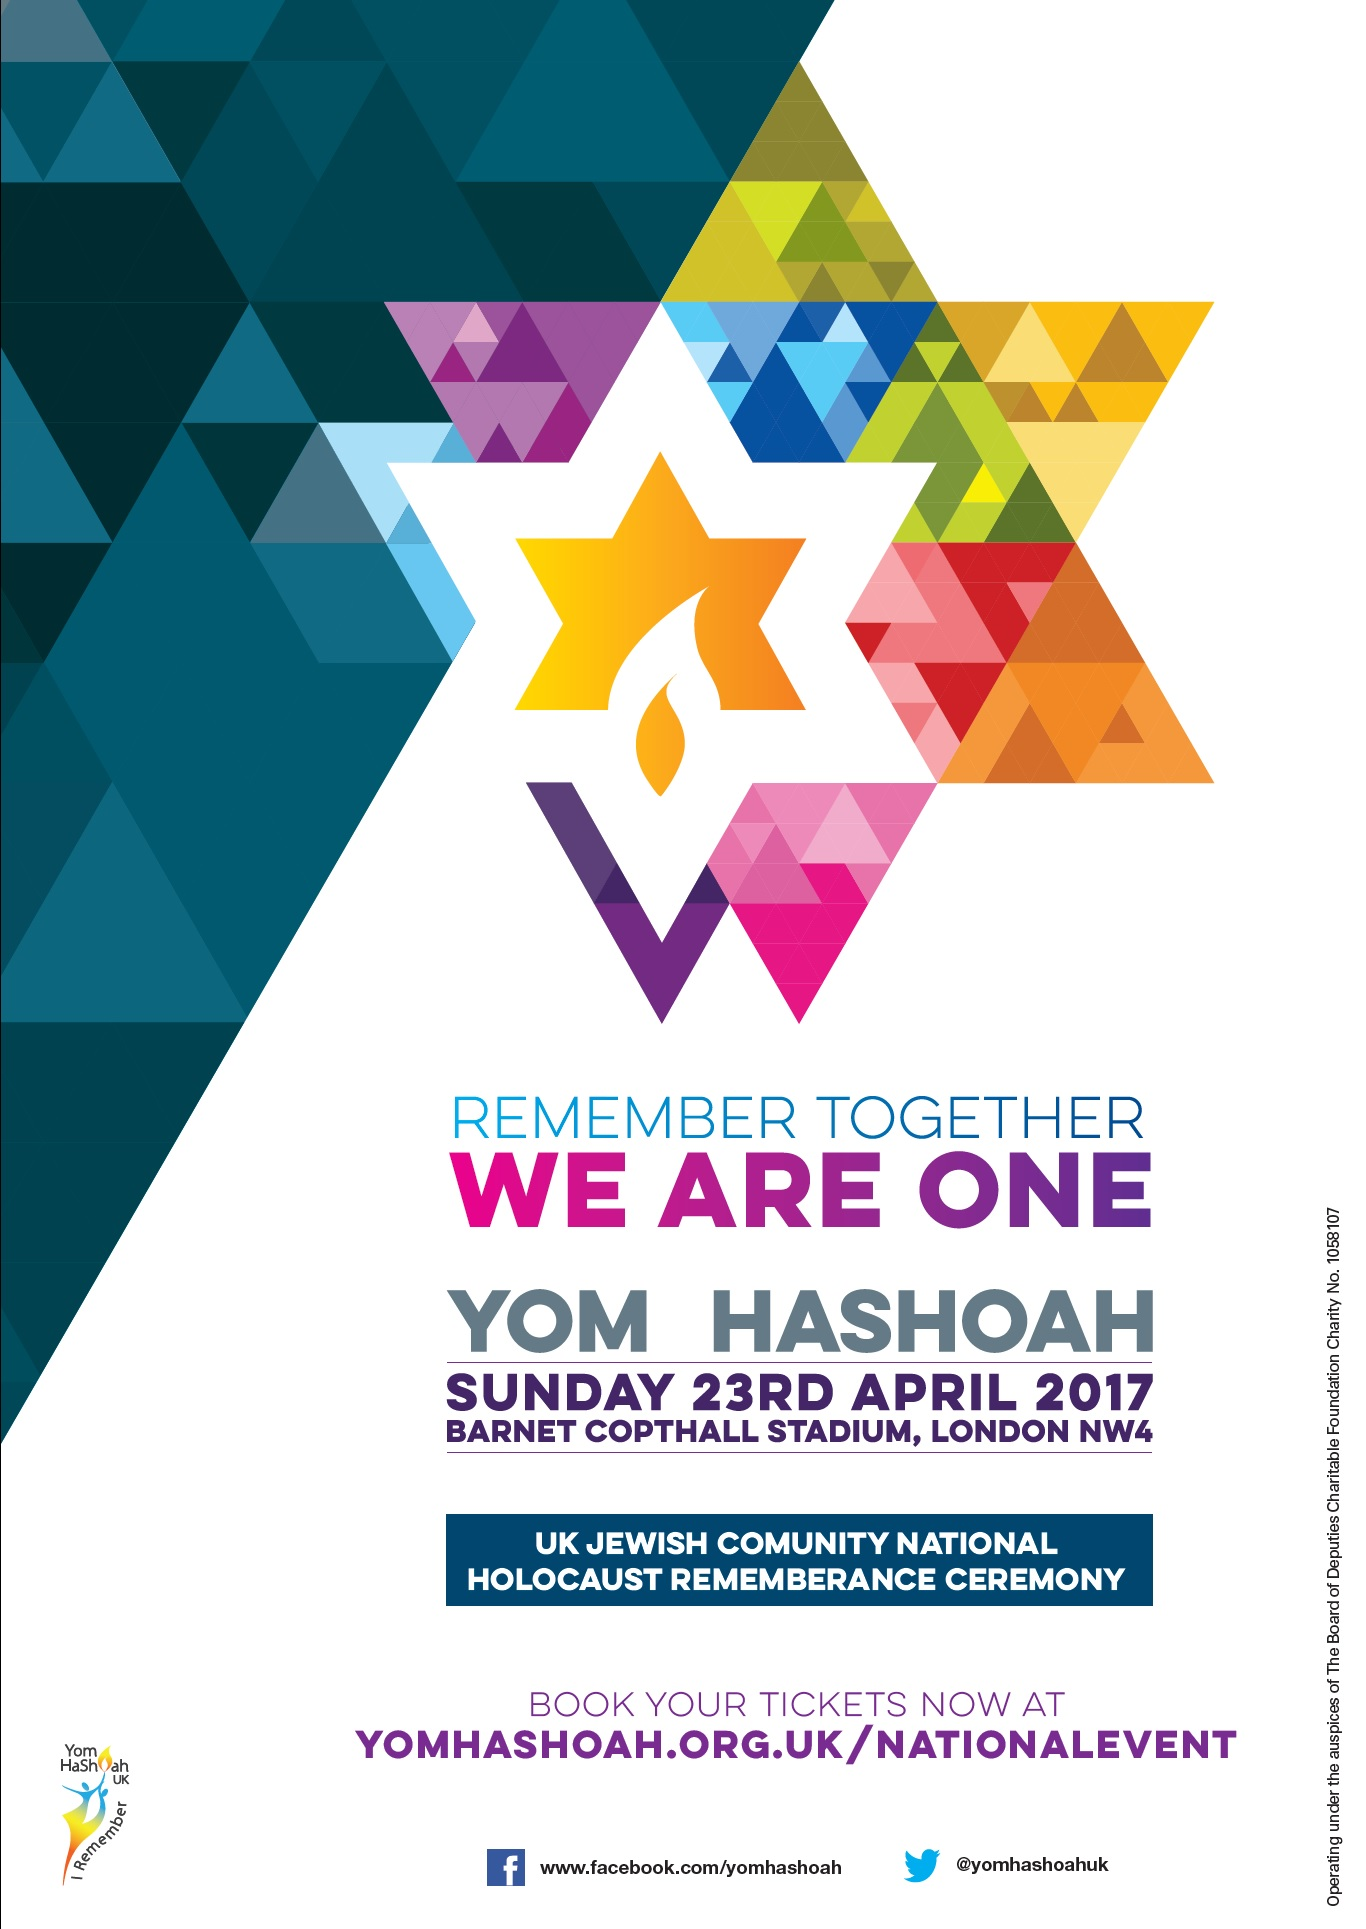 National Yom HaShoah Commemoration